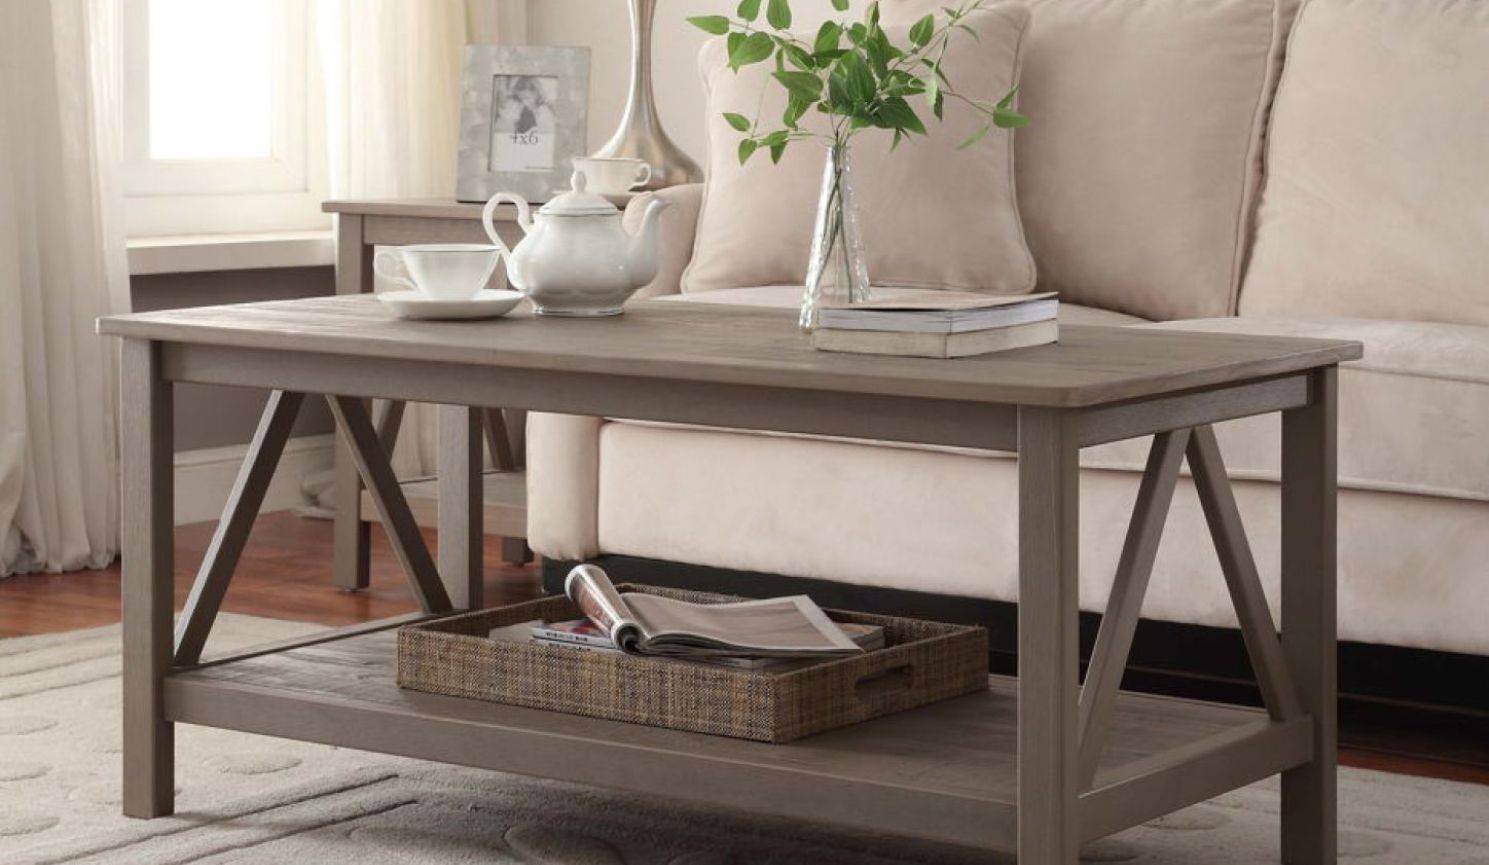 Splendid Wood Coffee Table Designs Tags : Wood Glass Coffee Table regarding Glass and Stone Coffee Table (Image 12 of 15)